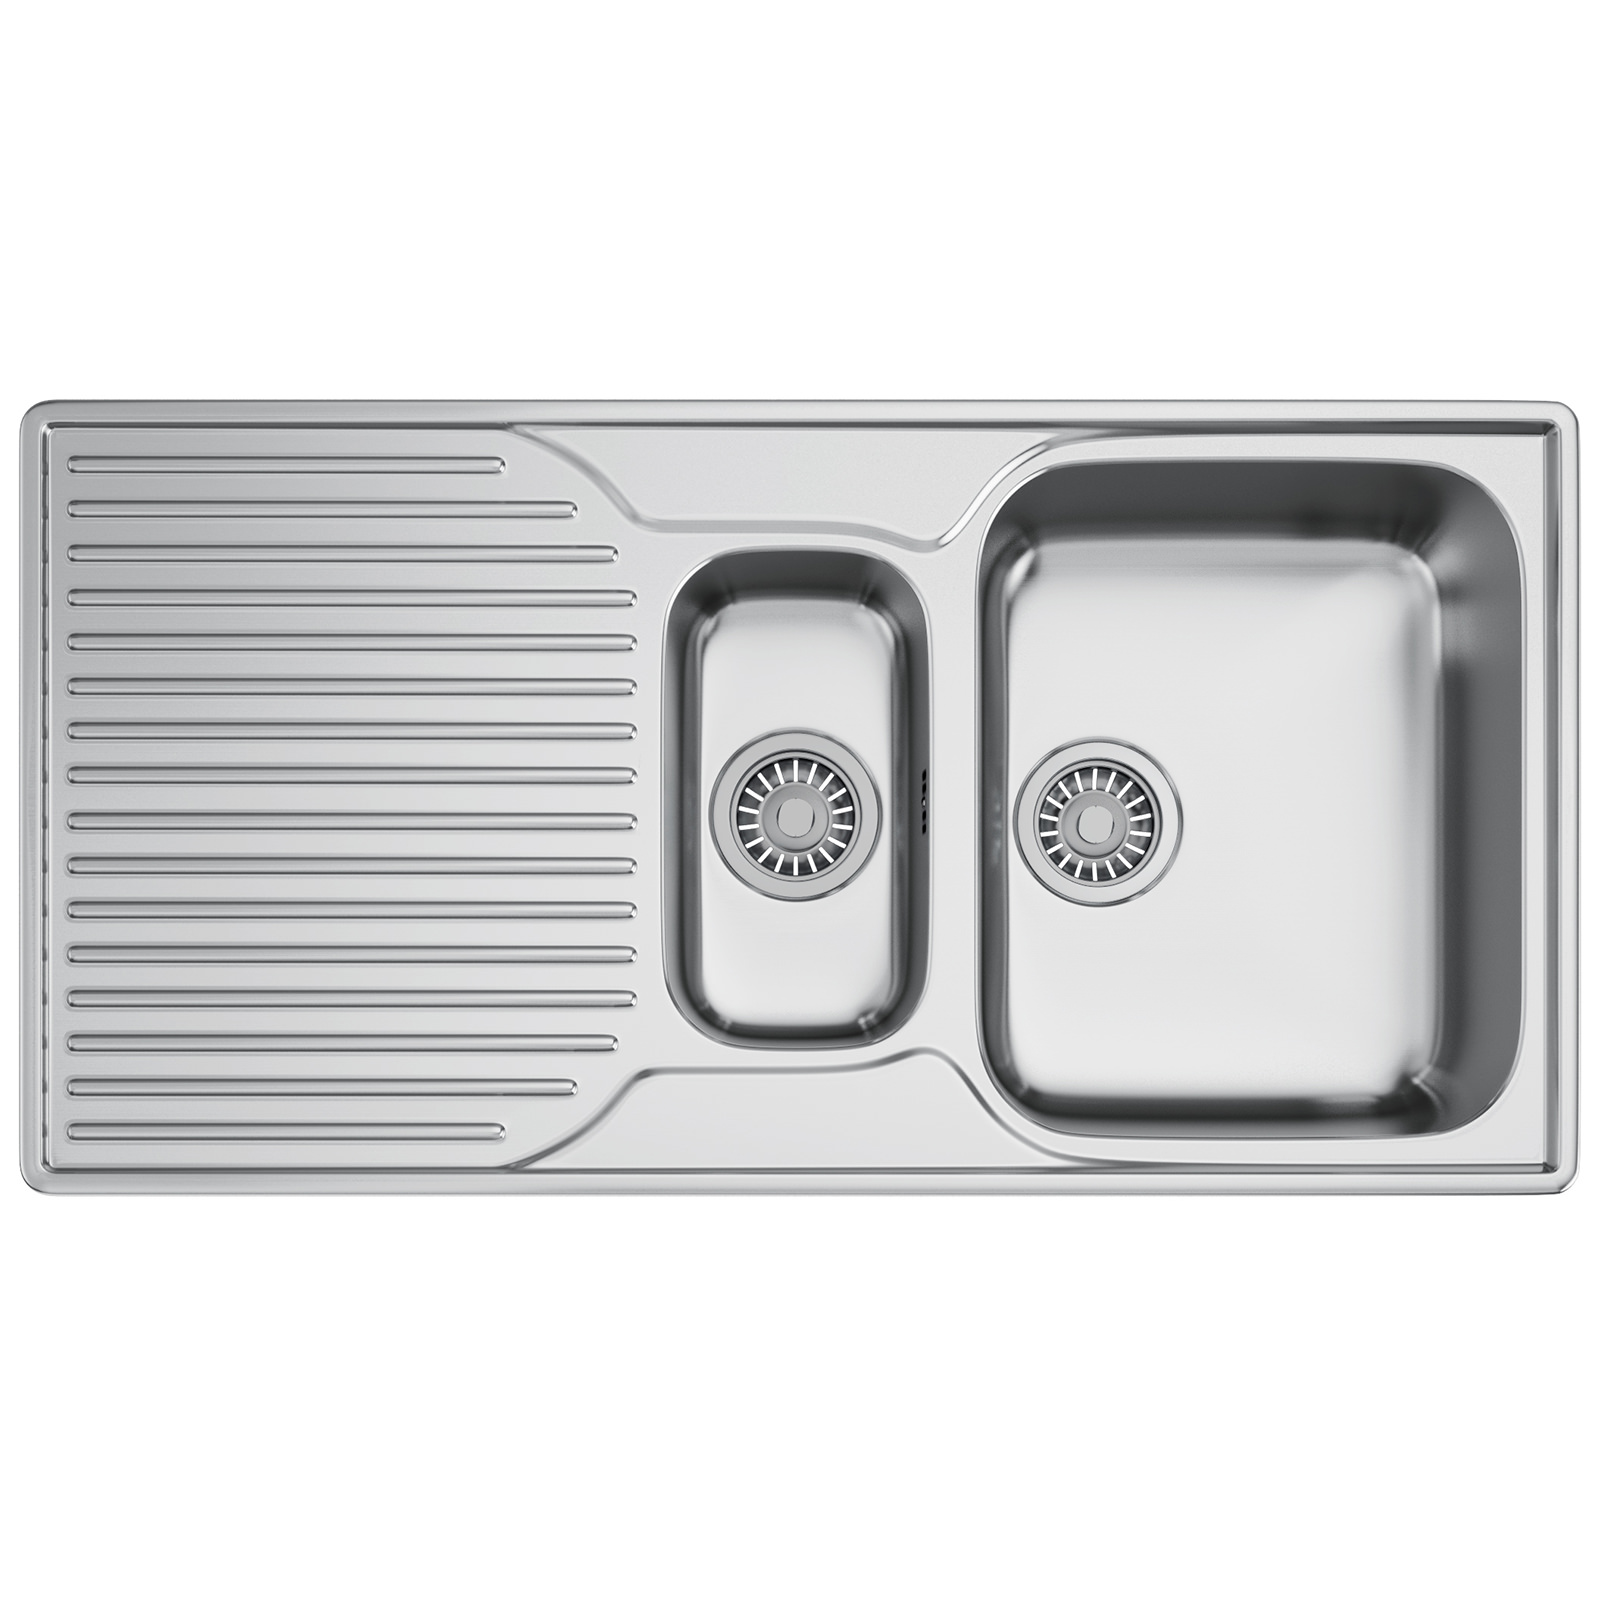 Franke Ariane ARX 651P Stainless Steel LHD 1.5 Bowl Inset Sink